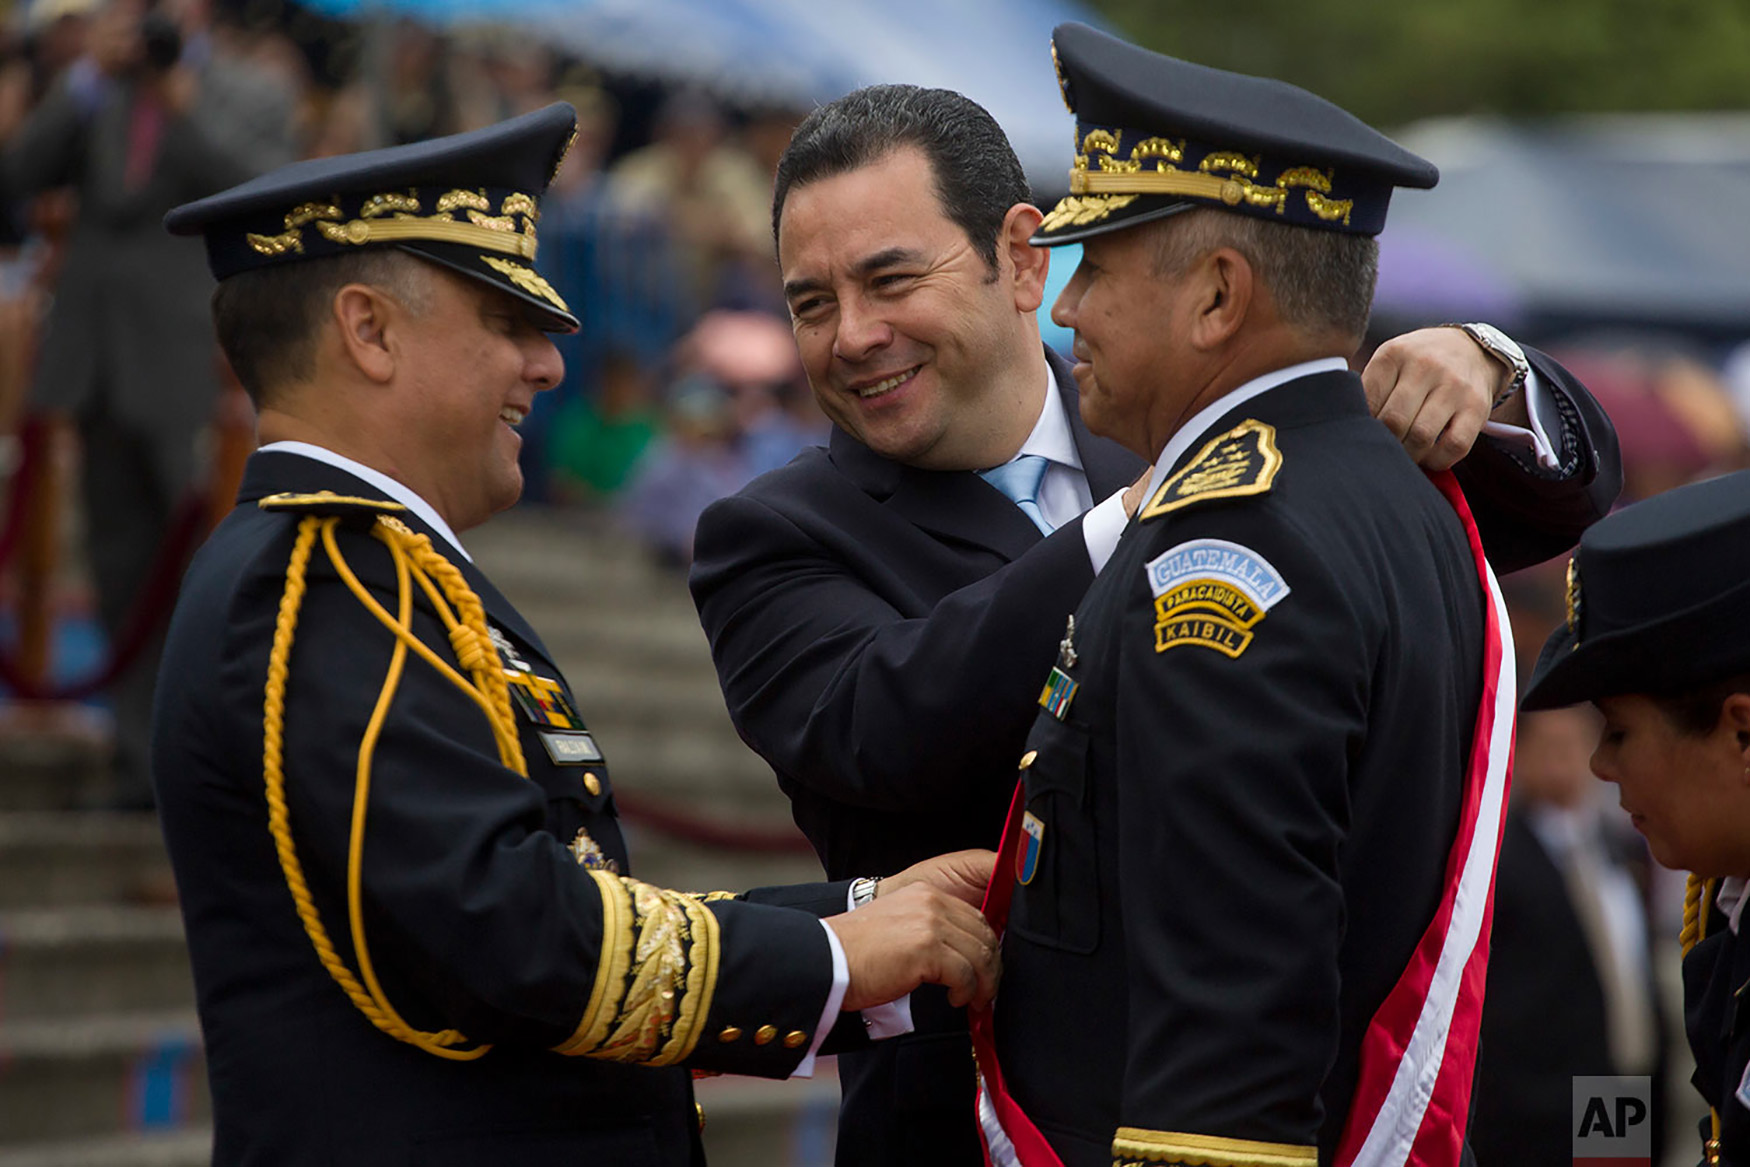 Guatemalan President Jimmy Morales center, places a sash on general Manuel Pineda Saravia, right, during the 145th anniversary of the Military school in San Juan Sacatepequez, Guatemala, Sept. 1, 2018. Morales announced Friday that he is shutting down a crusading U.N.-sponsored anti-graft commission that pressed a number of high-profile corruption probes, including one pending against the president himself over purported illicit campaign financing. (AP Photo/Moises Castillo)